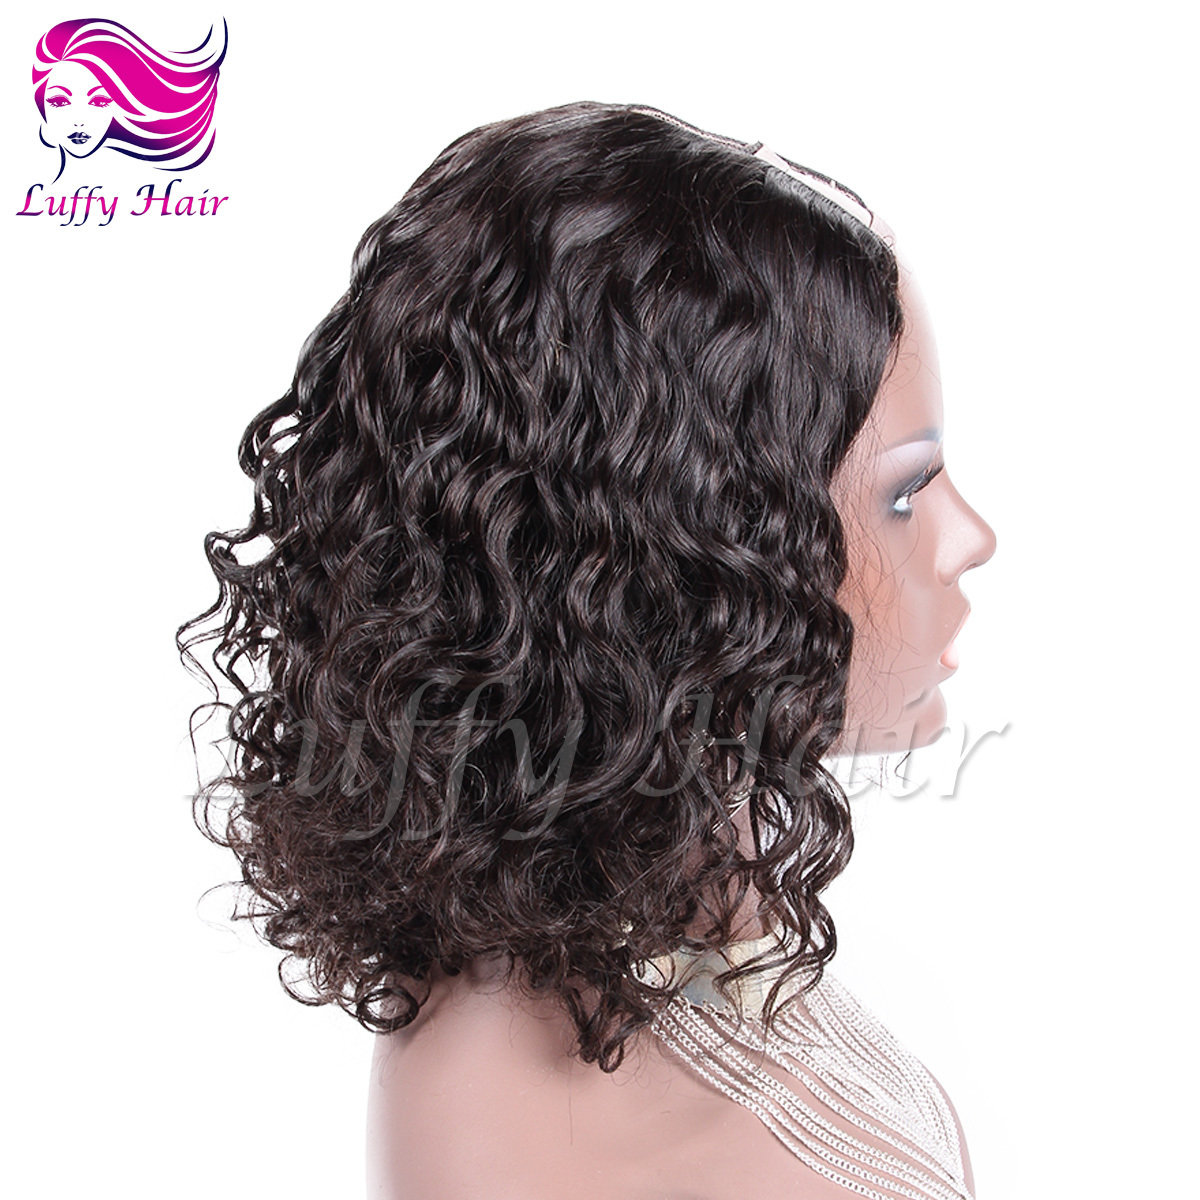 8A Virgin Human Hair Short Curly U Part Wig - KWU012